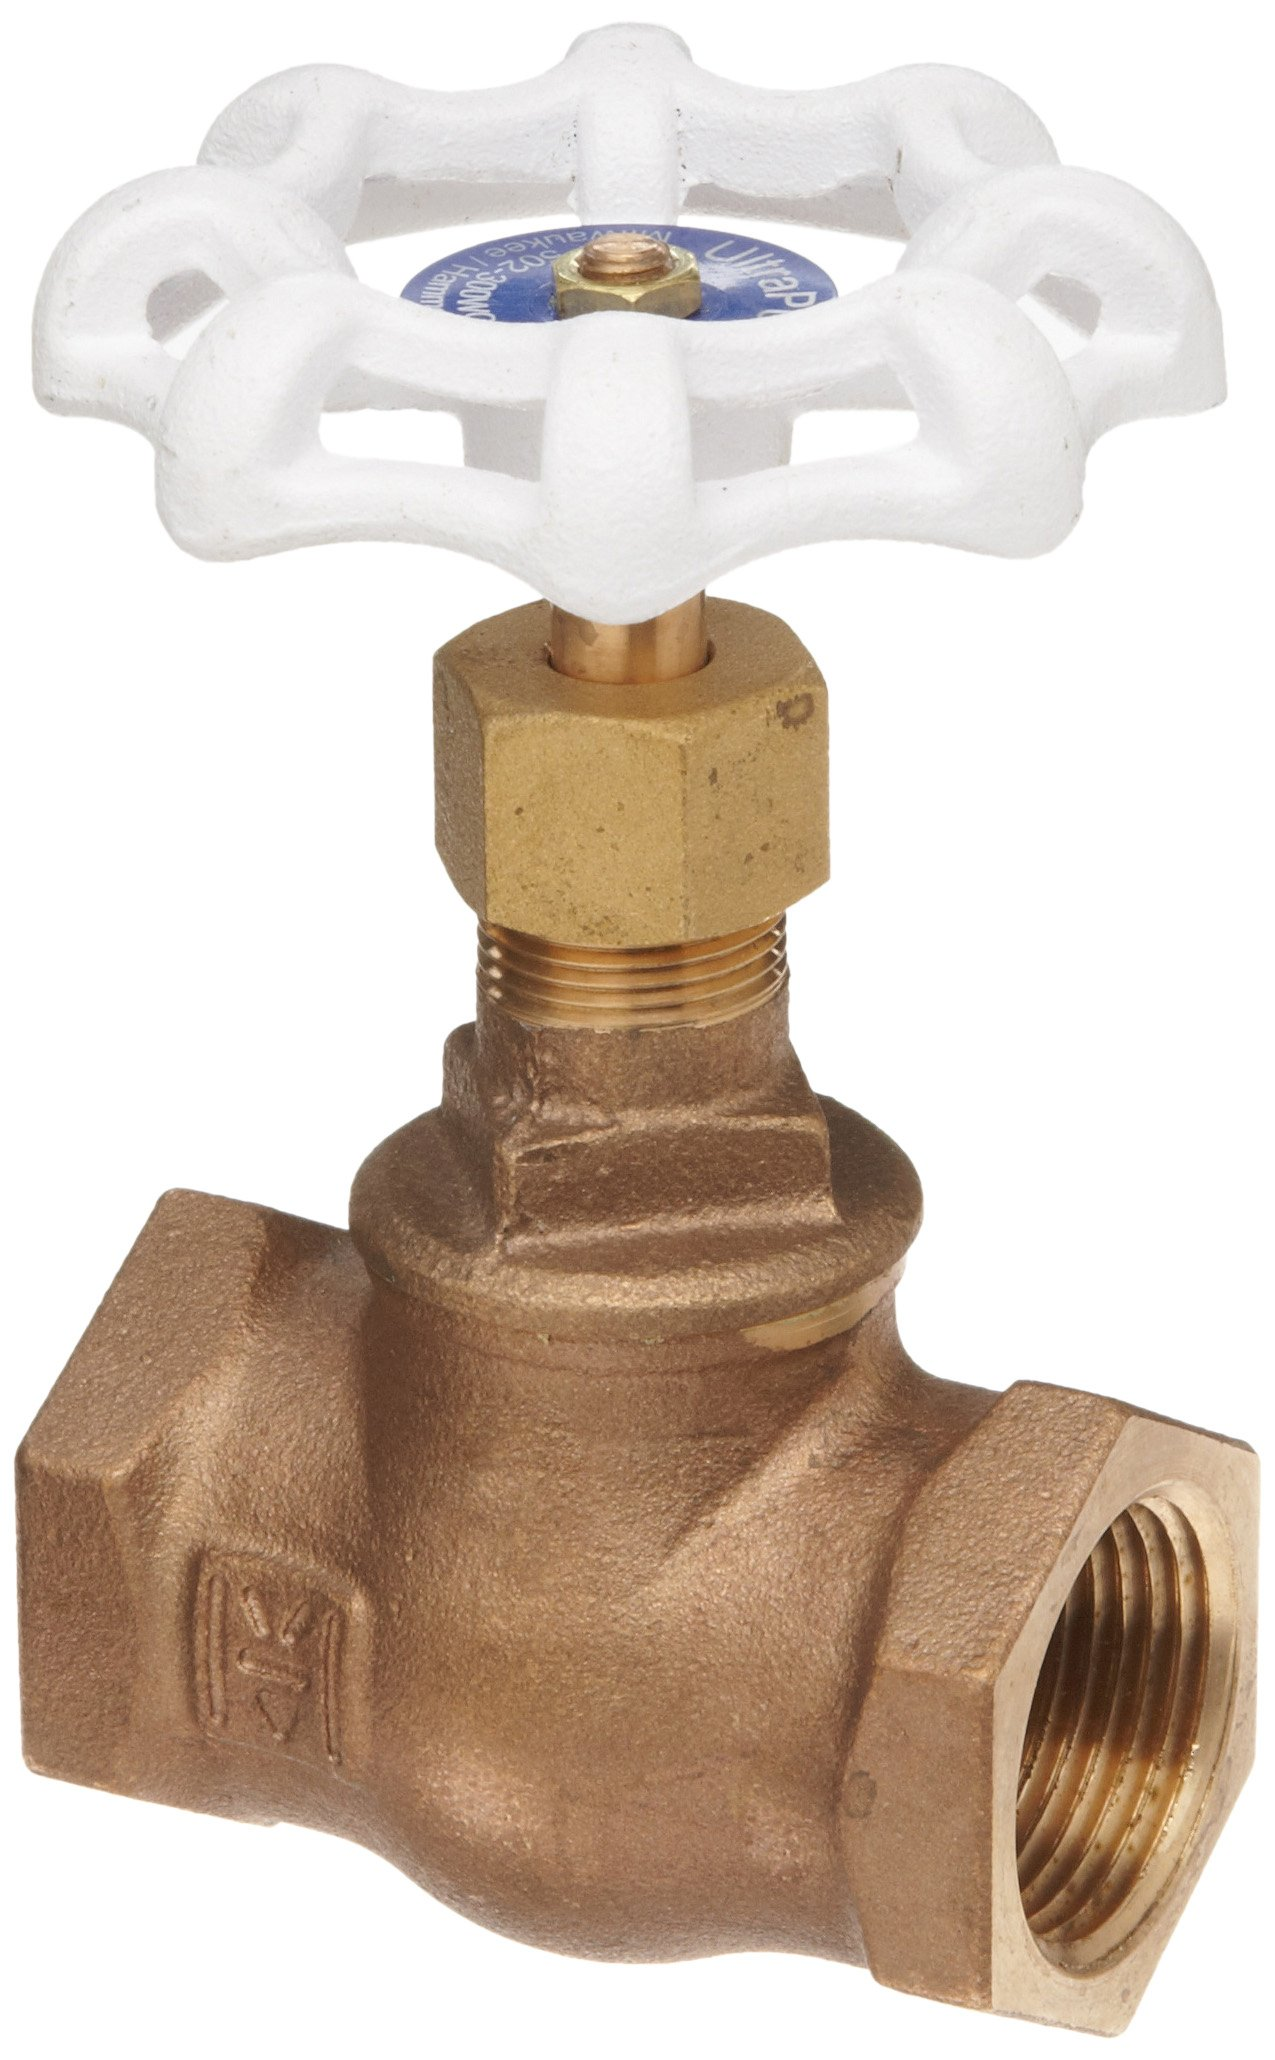 Milwaukee Valve UP502 Series Bronze Globe Valve, Potable Water Service, Inline, Threaded Bonnet, 1/2'' NPT Female